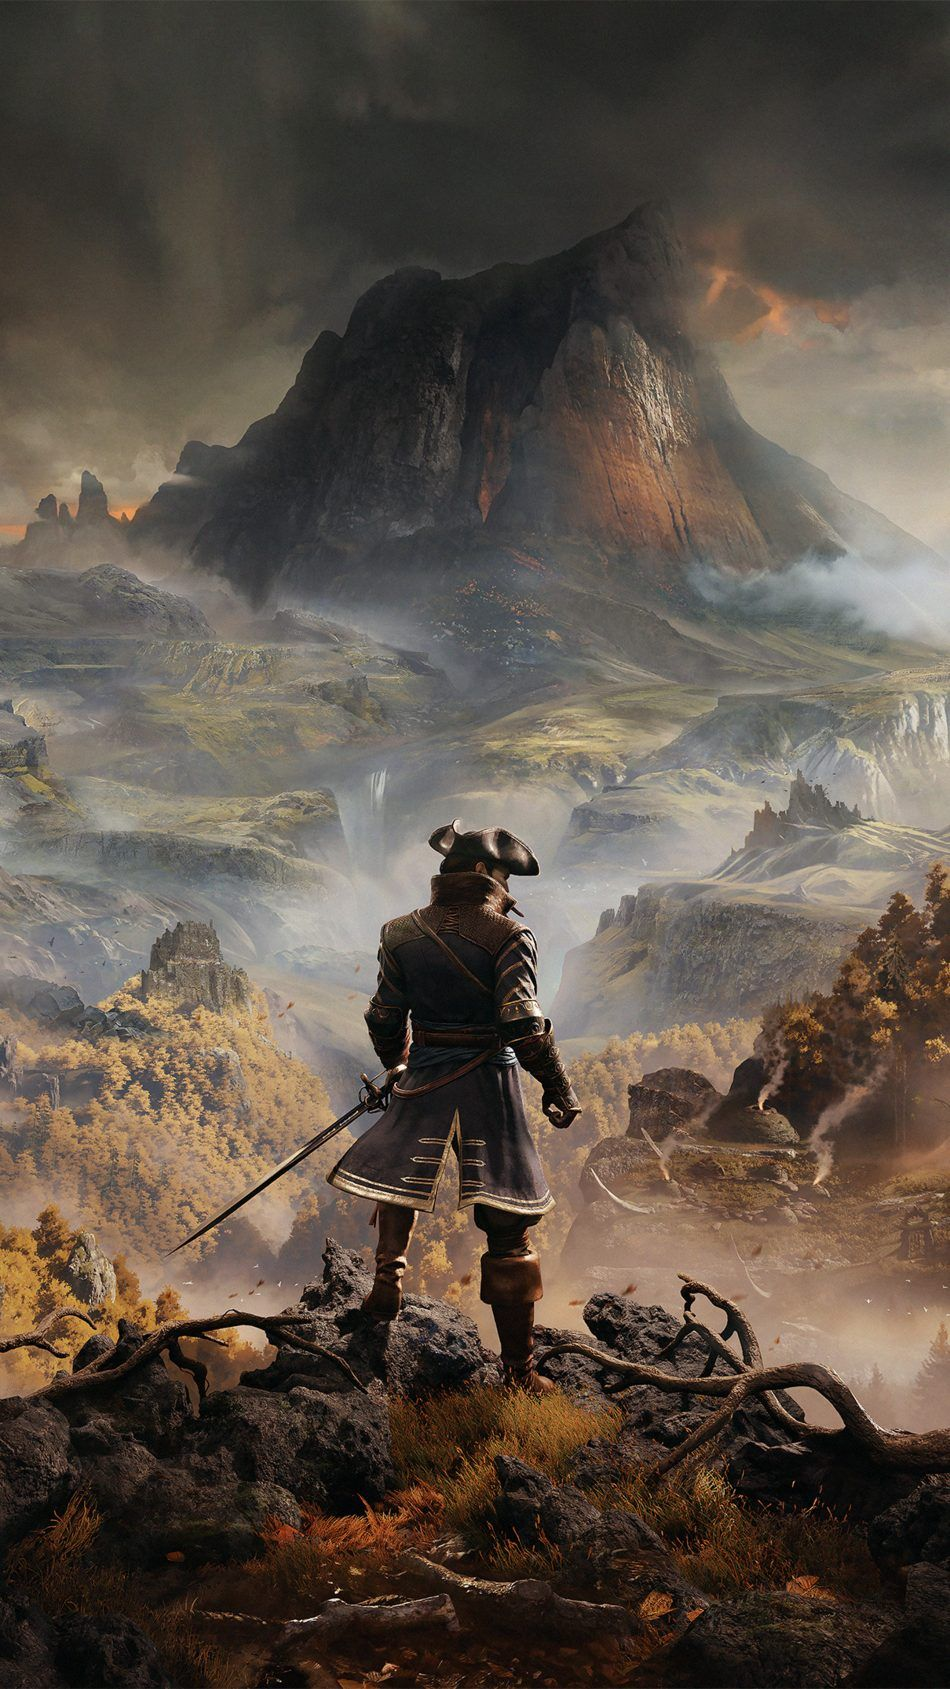 Greedfall Video Game 4k Ultra Hd Mobile Wallpaper Gaming Wallpapers Hd Gaming Wallpapers Overwatch Wallpapers